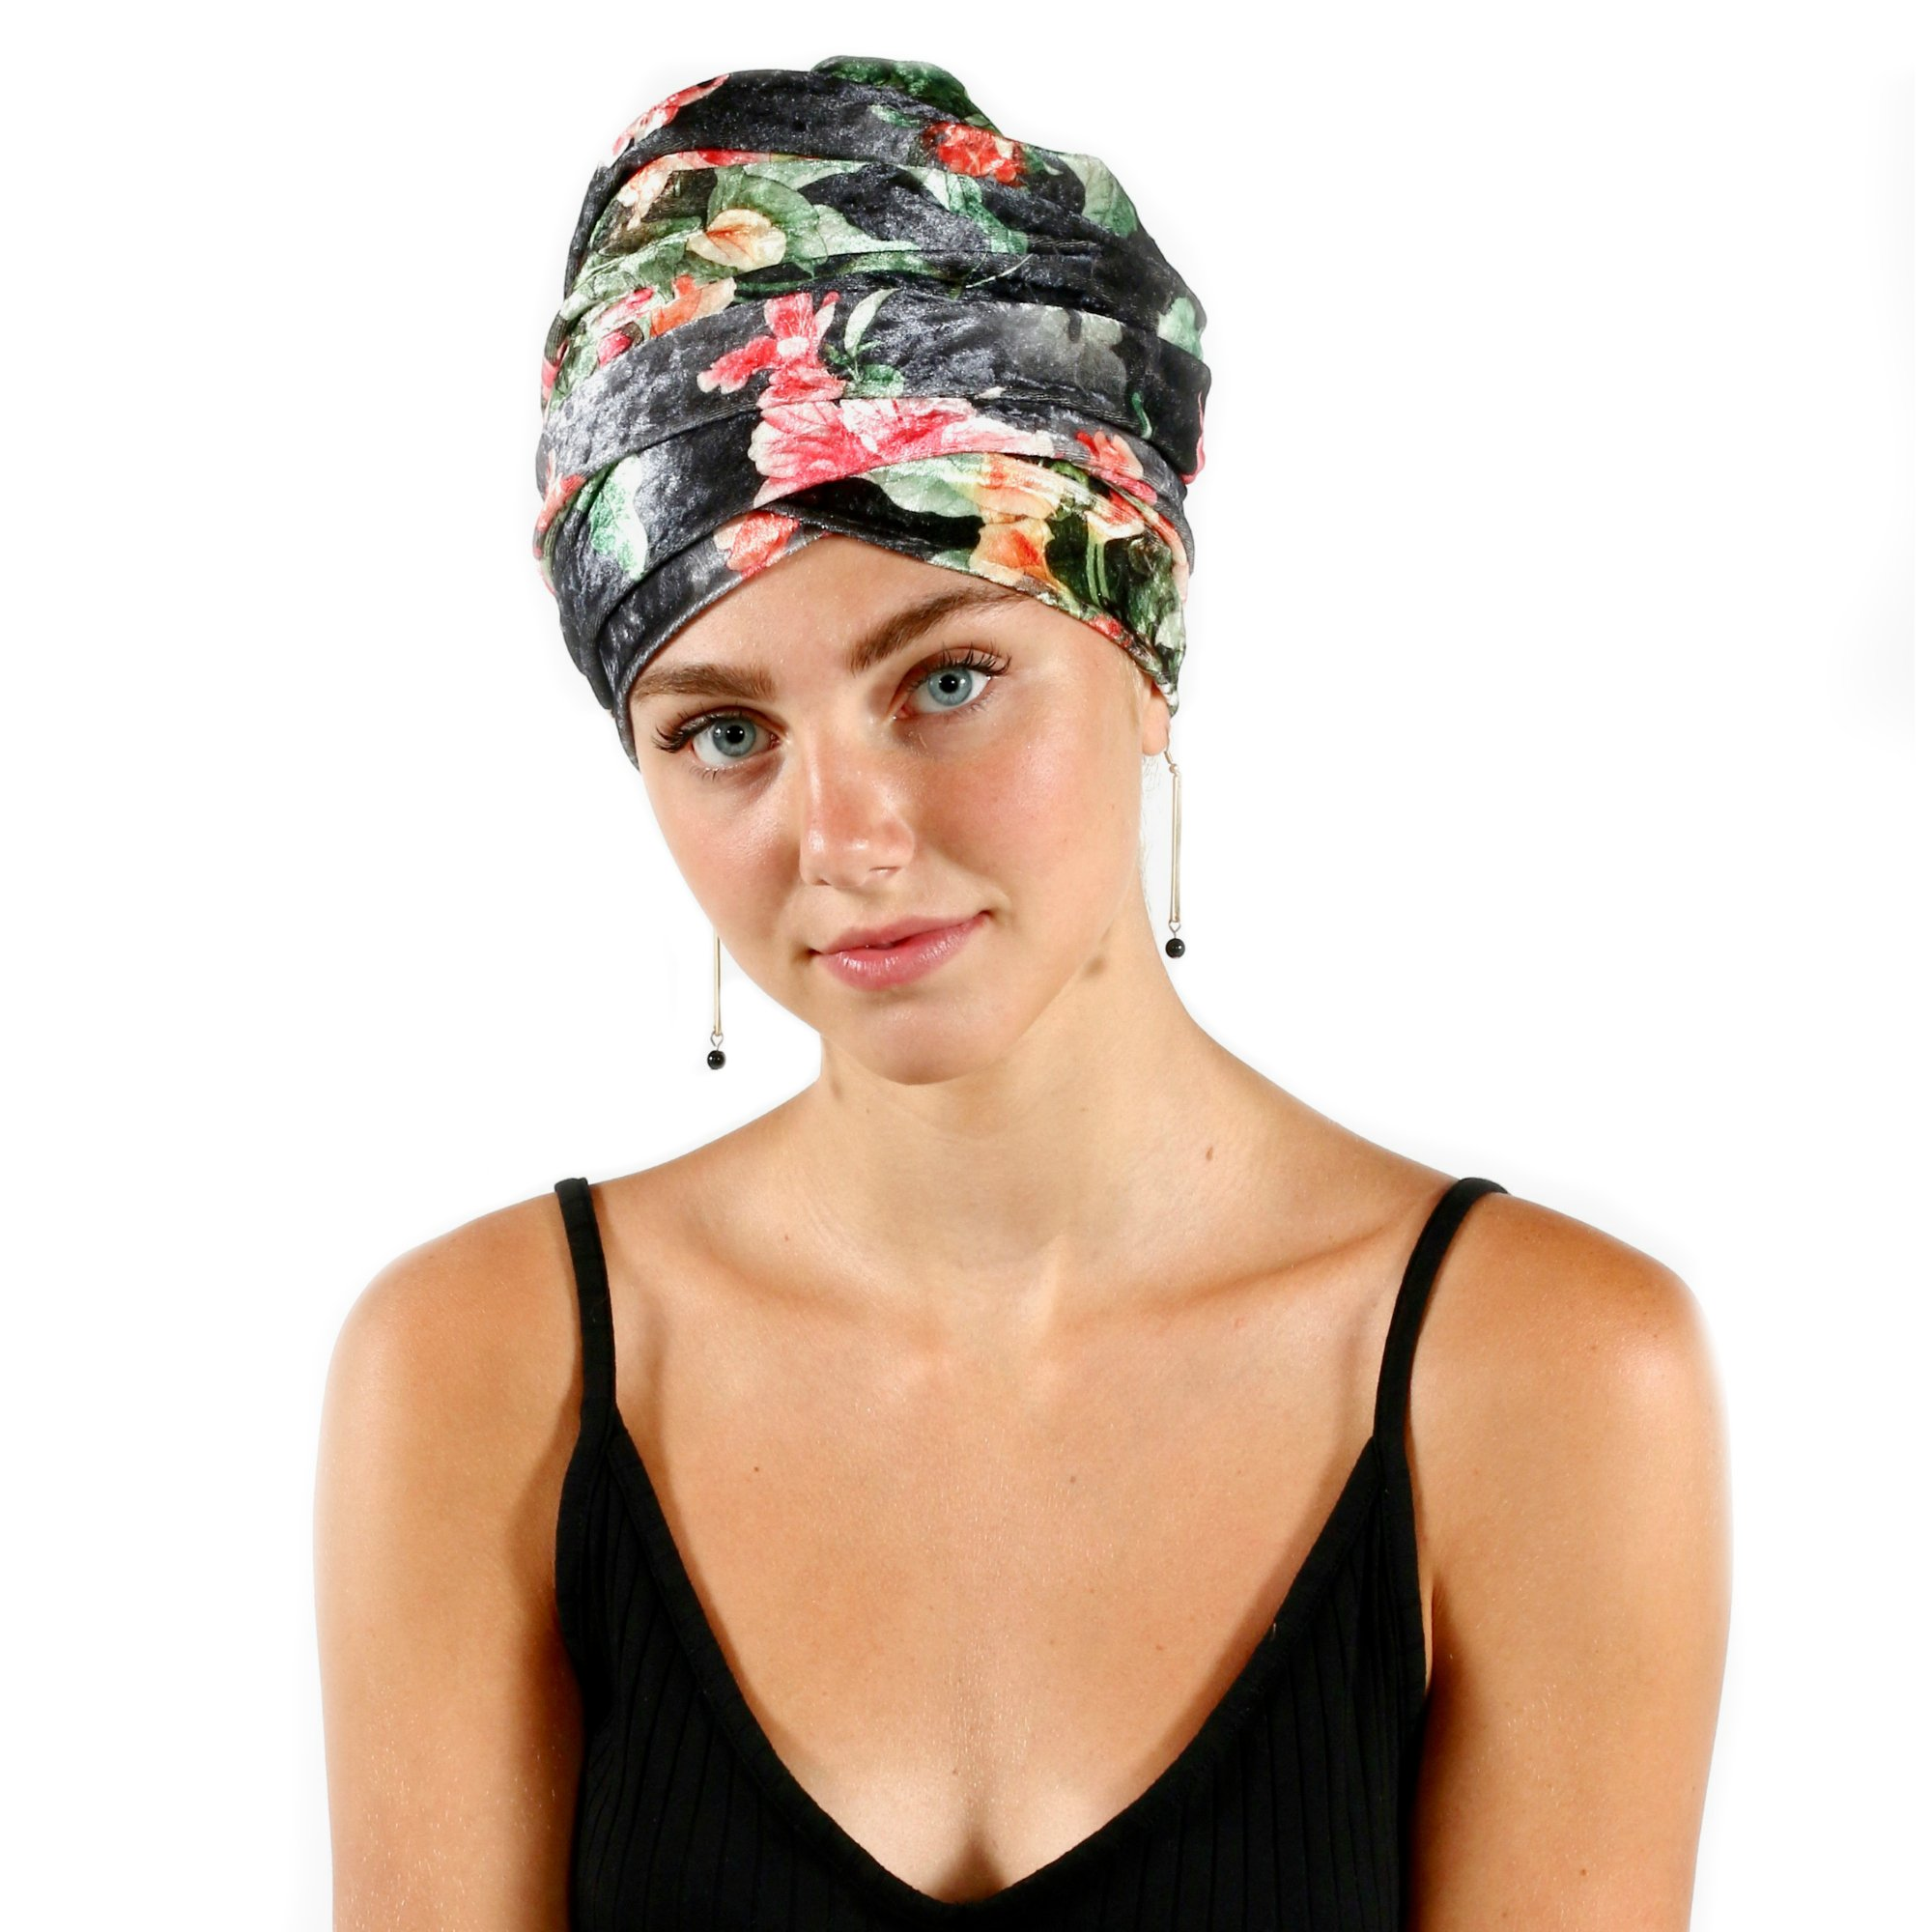 Pretty Simple Luxury Turban Floral Velvet Head Wrap Extra Long Scarf Tie, Gray by Pretty PS Simple (Image #7)